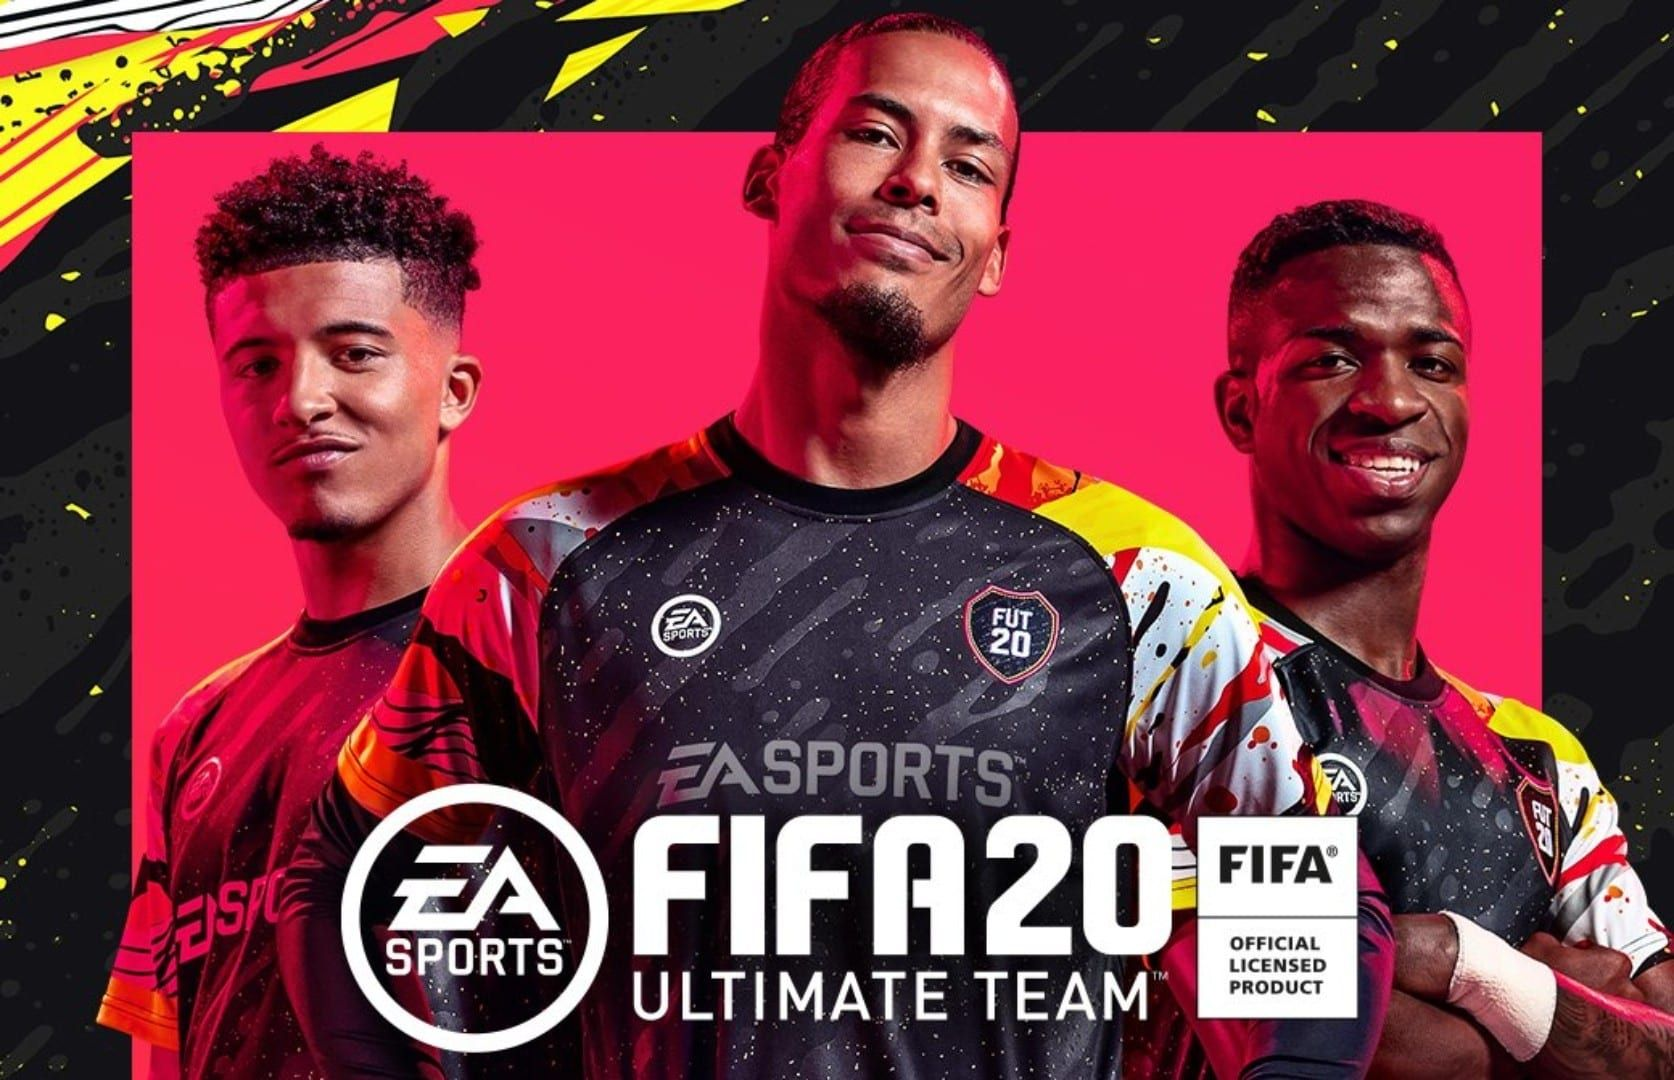 Fifa20 Ultimate Team Millions Made Easy In 2020 Fifa 20 Fifa Fifa Ultimate Team